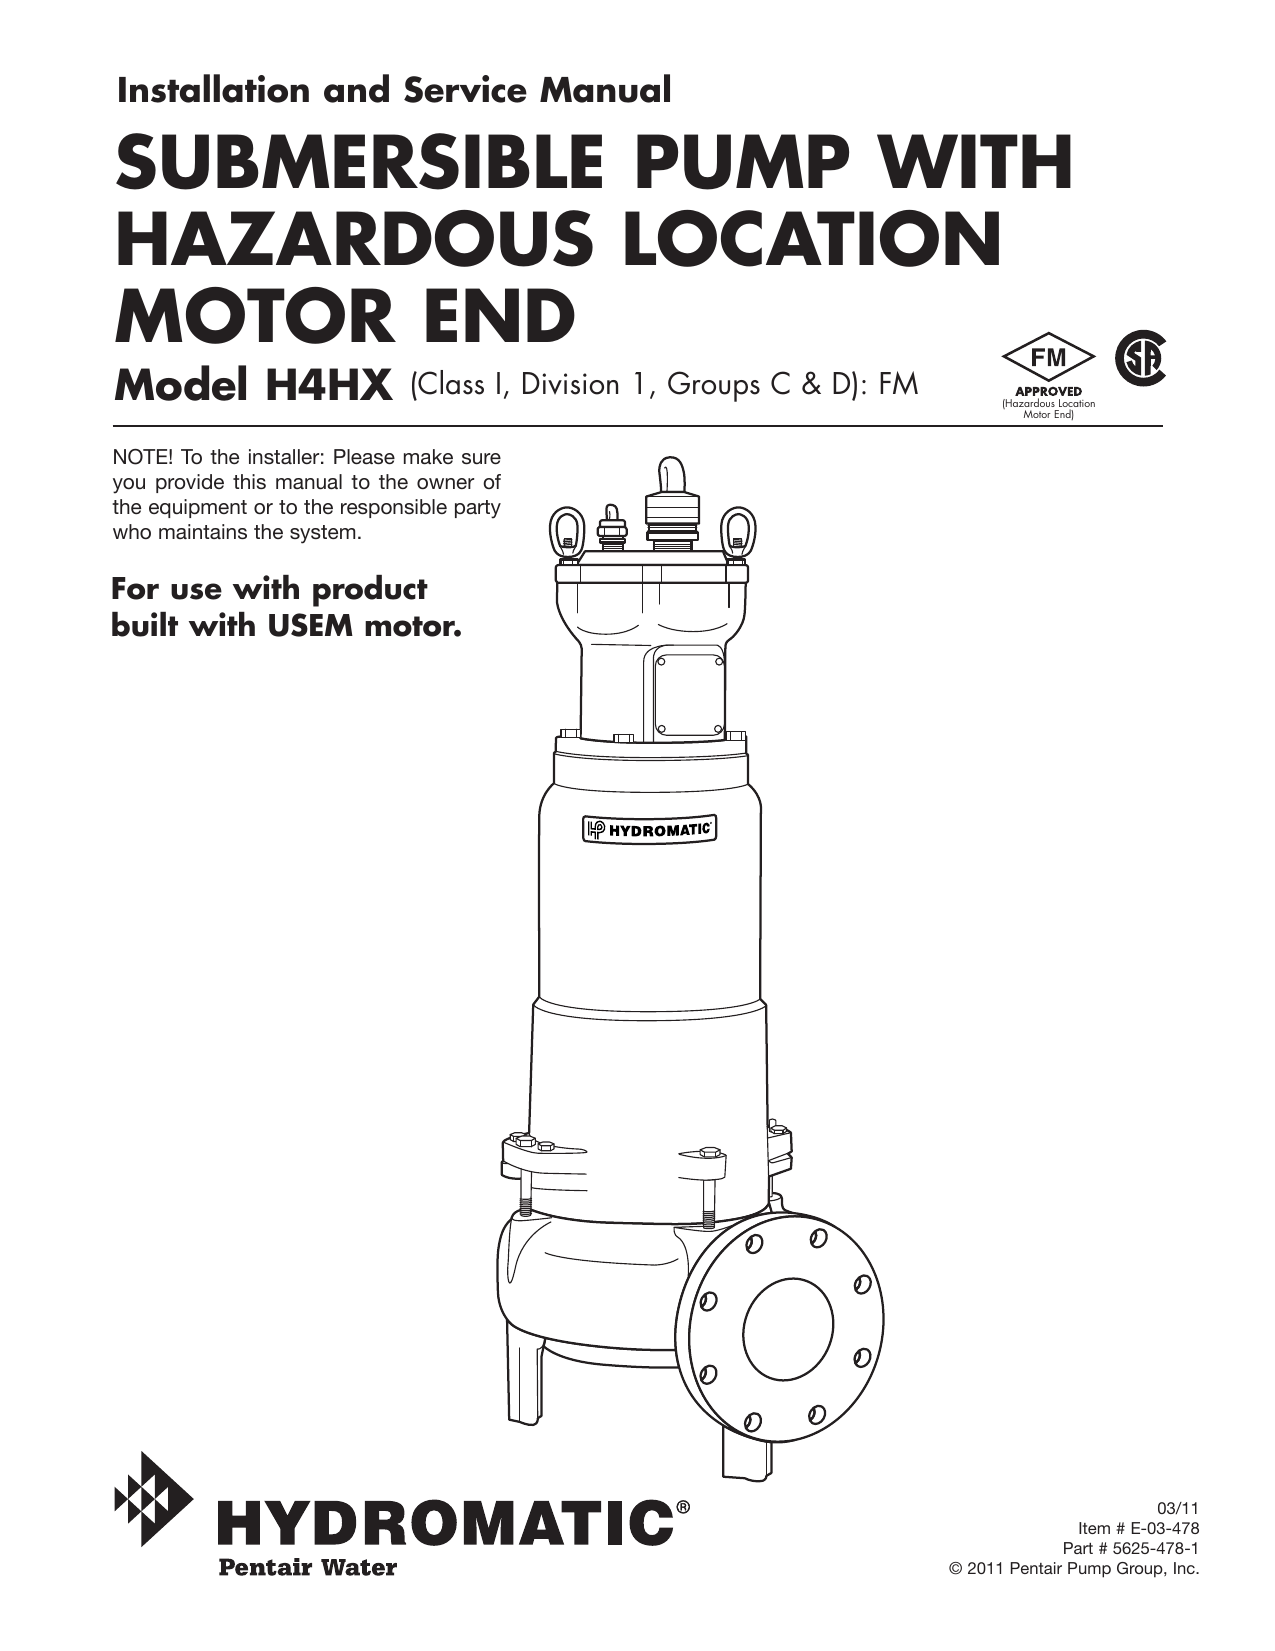 submersible pump with hazardous location motor end